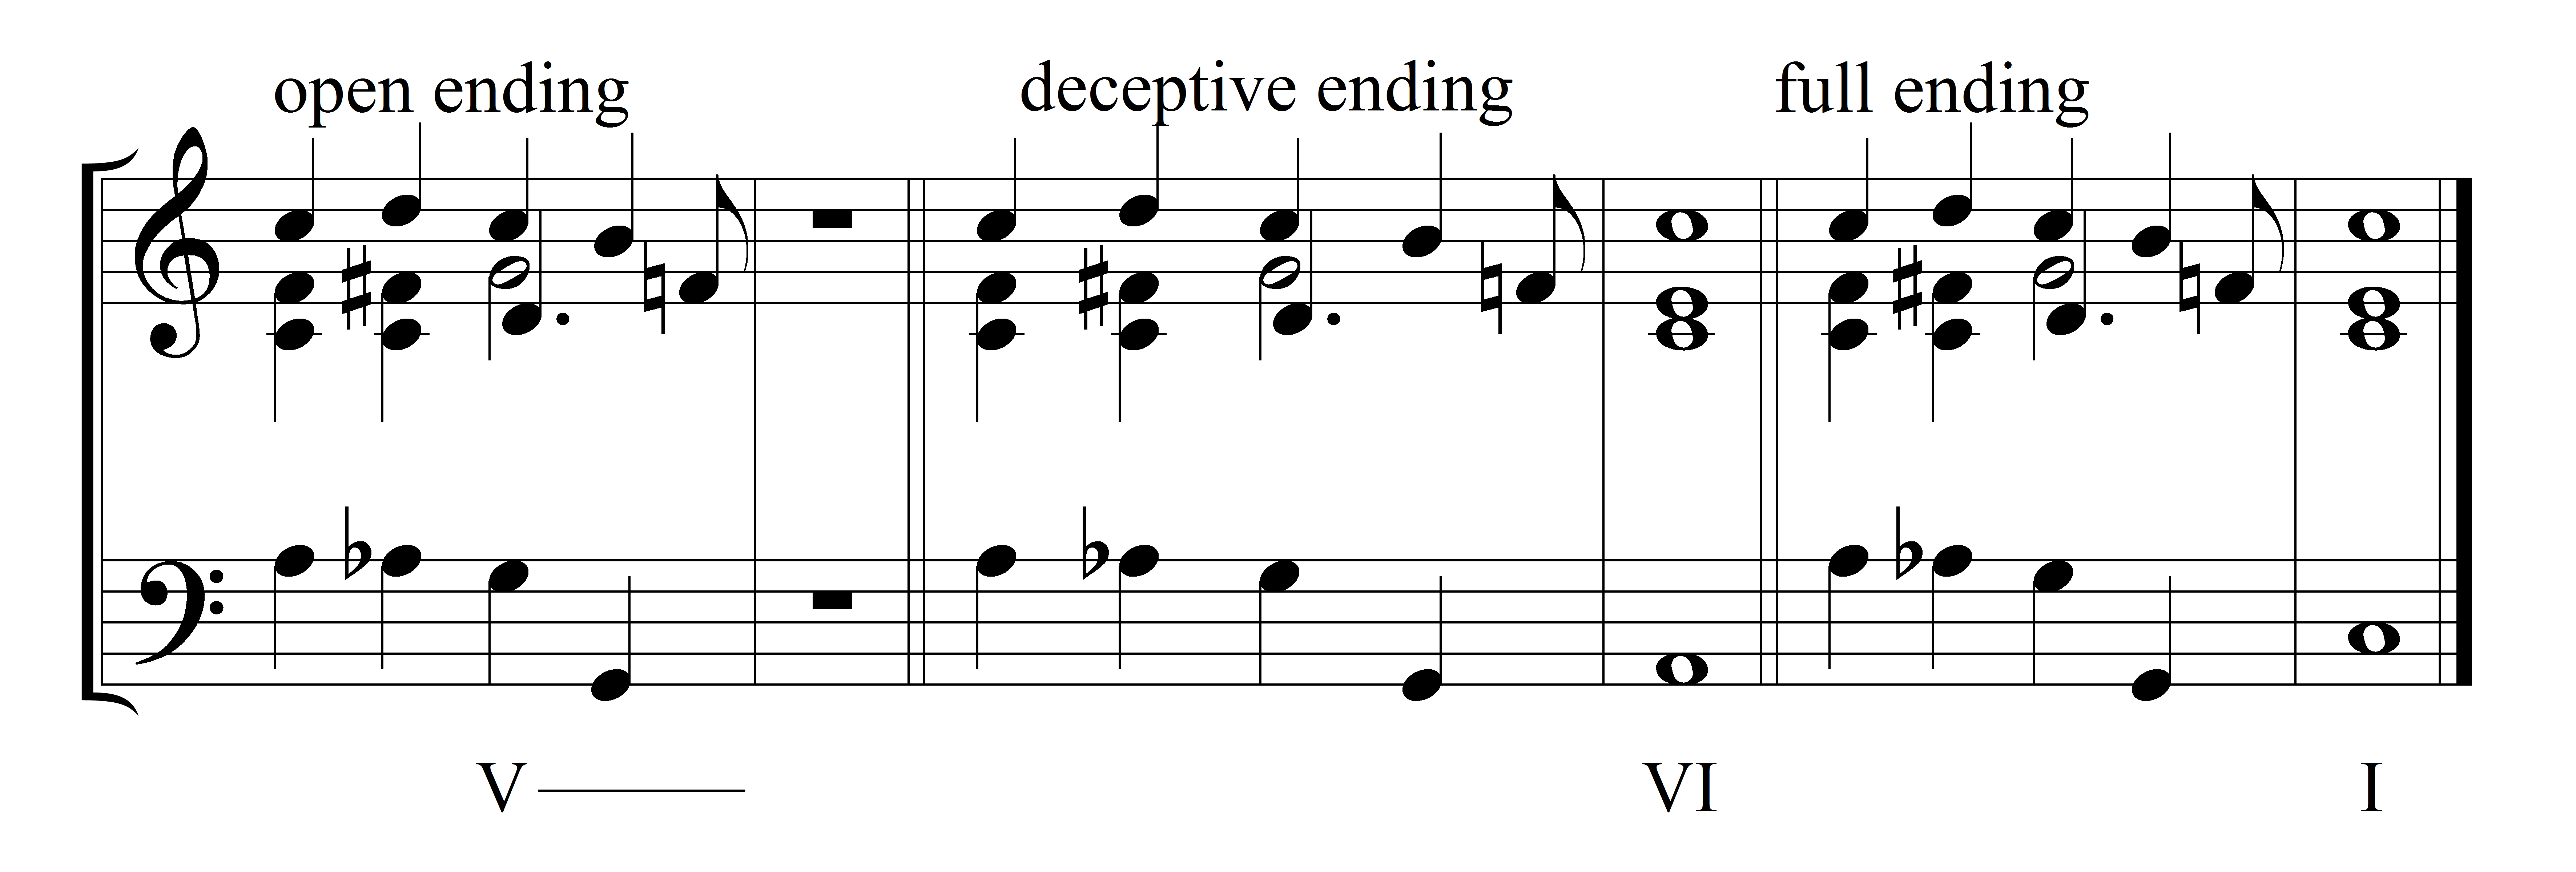 example 34 - harmonic tension and endings